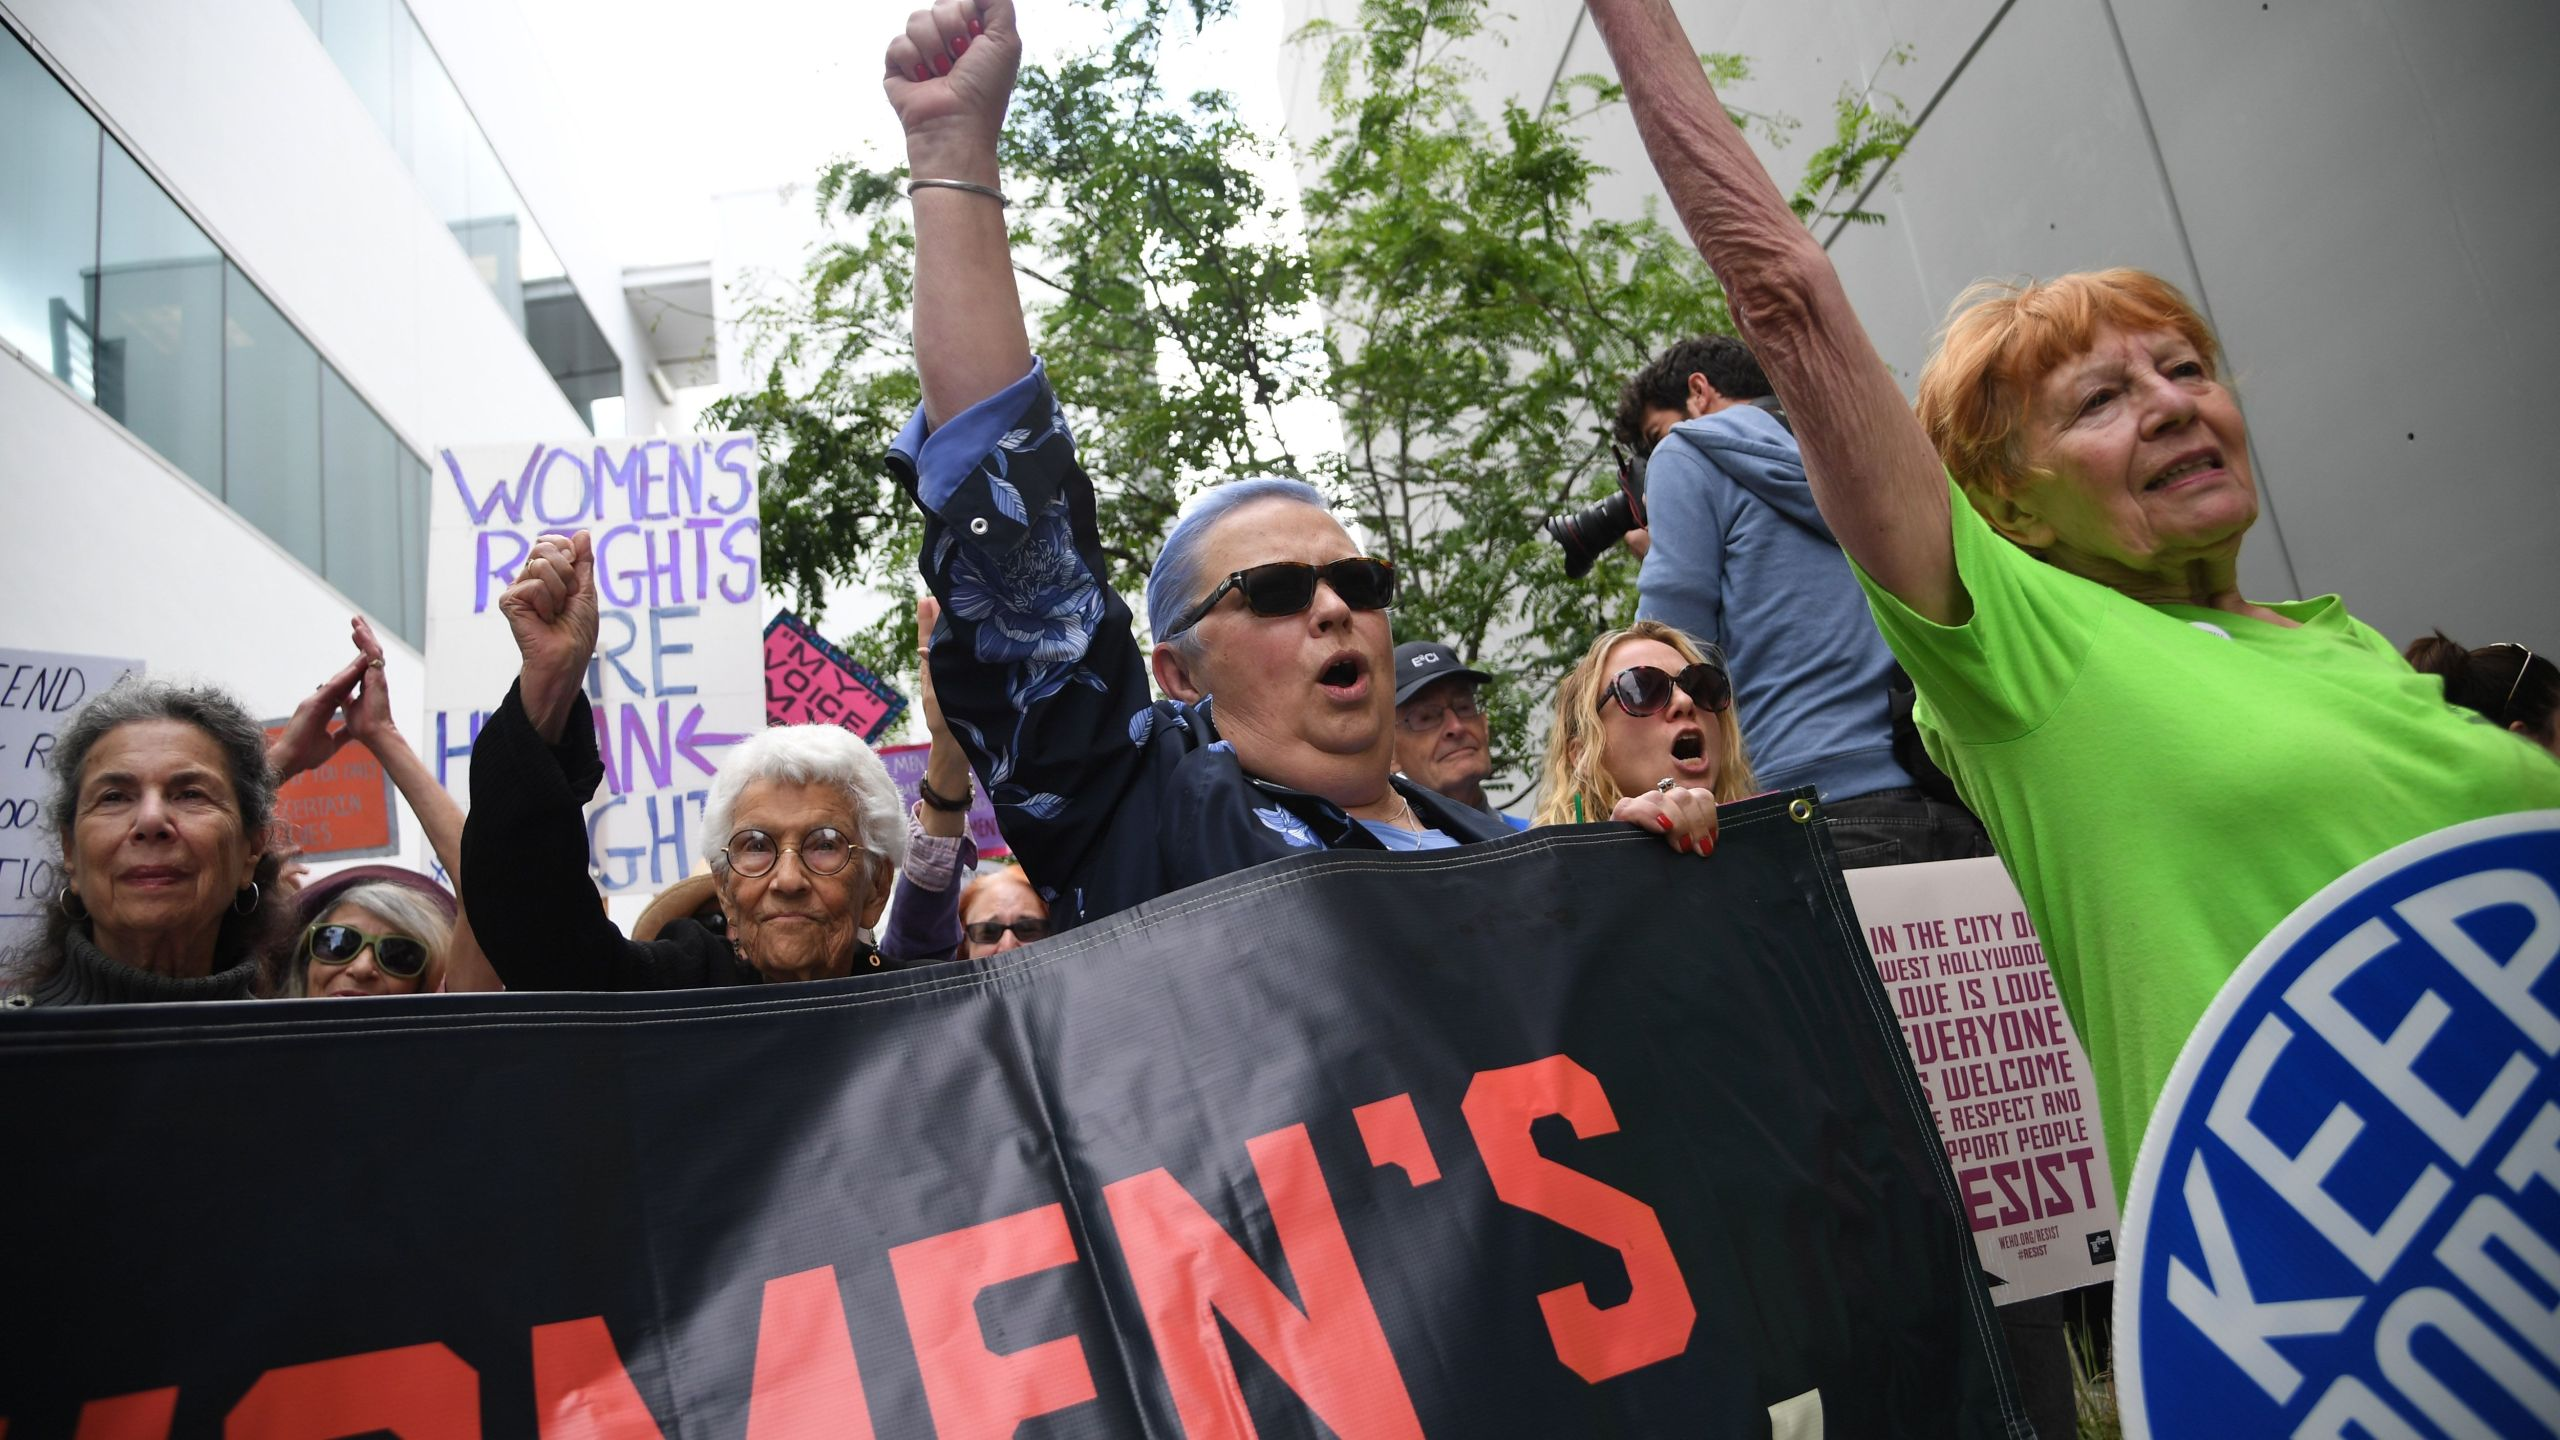 Reproductive rights advocates in West Hollywood rally against new restrictions being enacted on abortions in several U.S. states in a national day of action on May 21, 2019. (Credit: Robyn Beck / AFP / Getty Images)